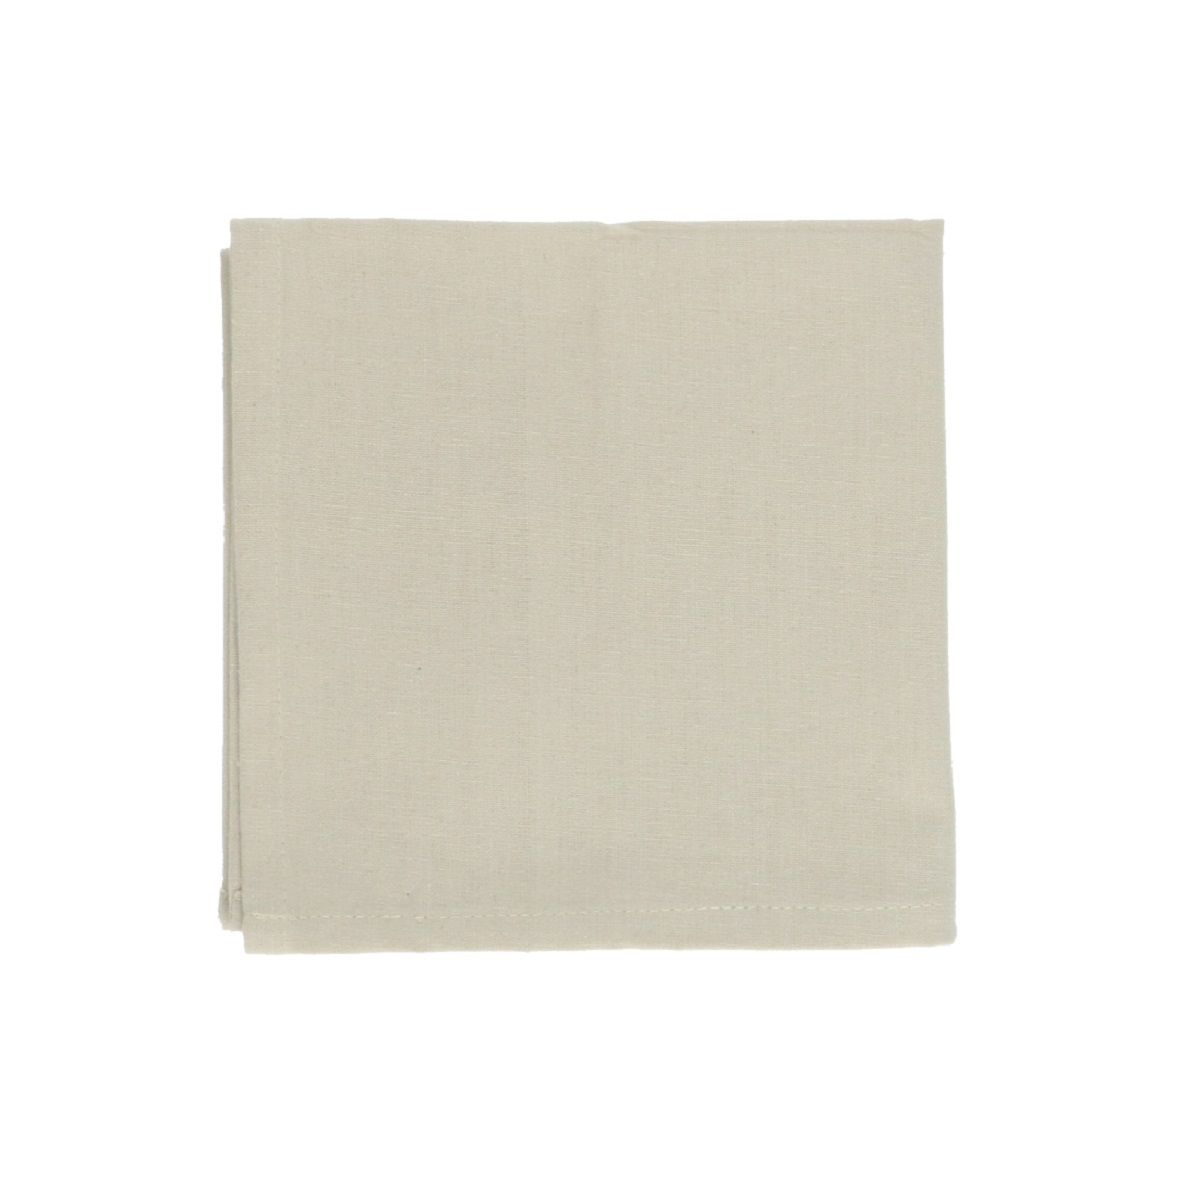 Serviette de table, coton bio, galet